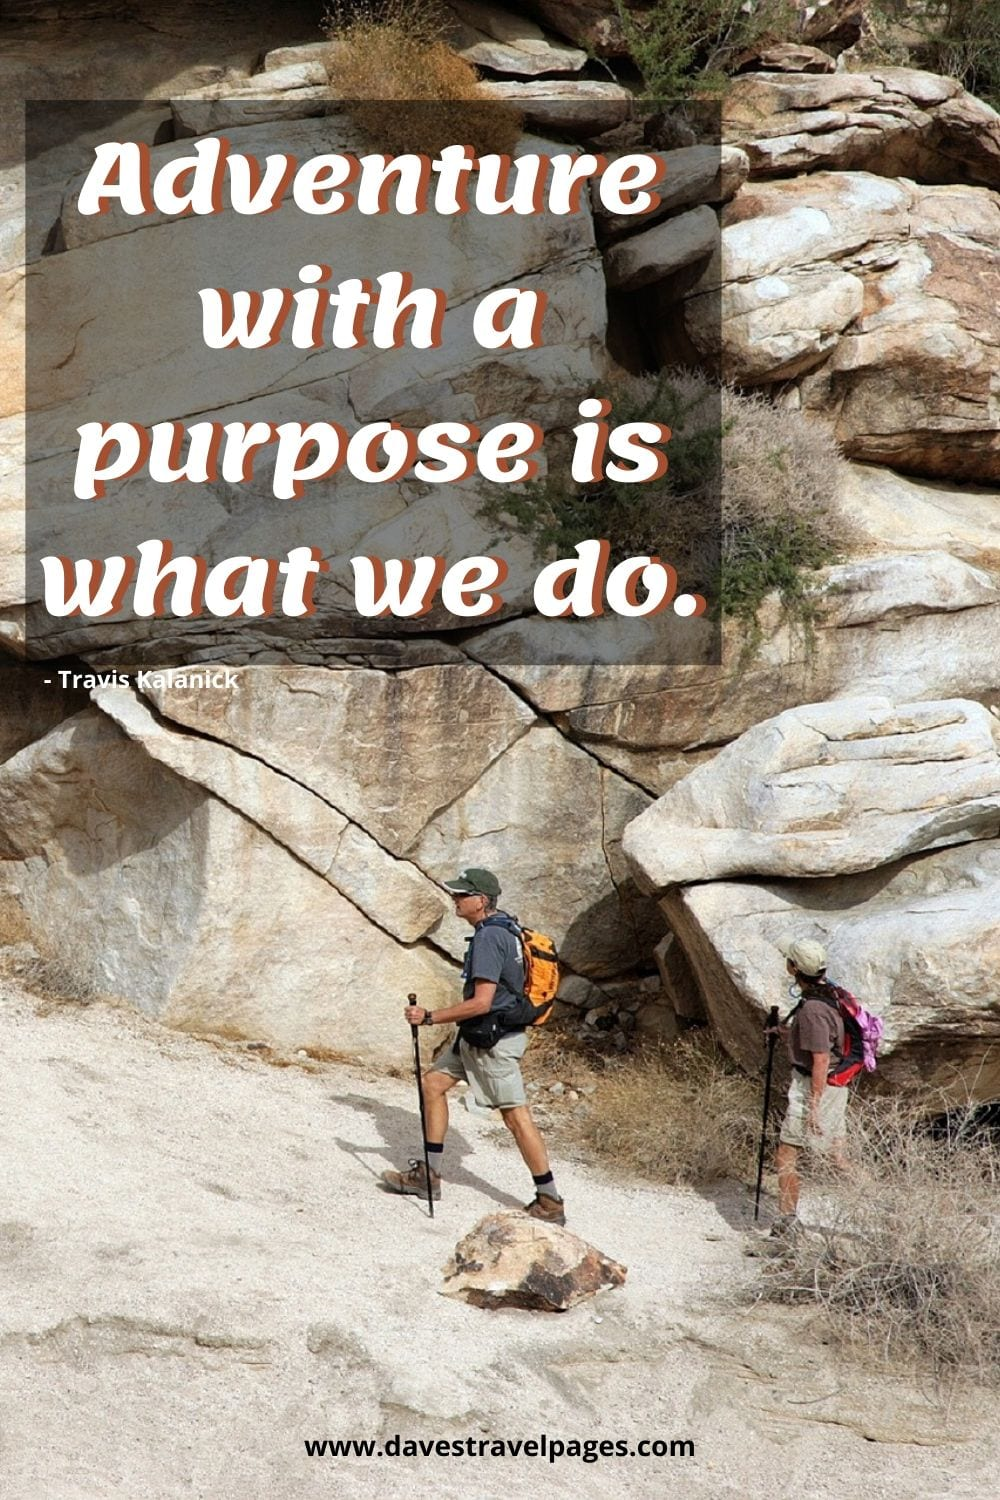 Adventure with a purpose is what we do - Quote by Travis Kalanick